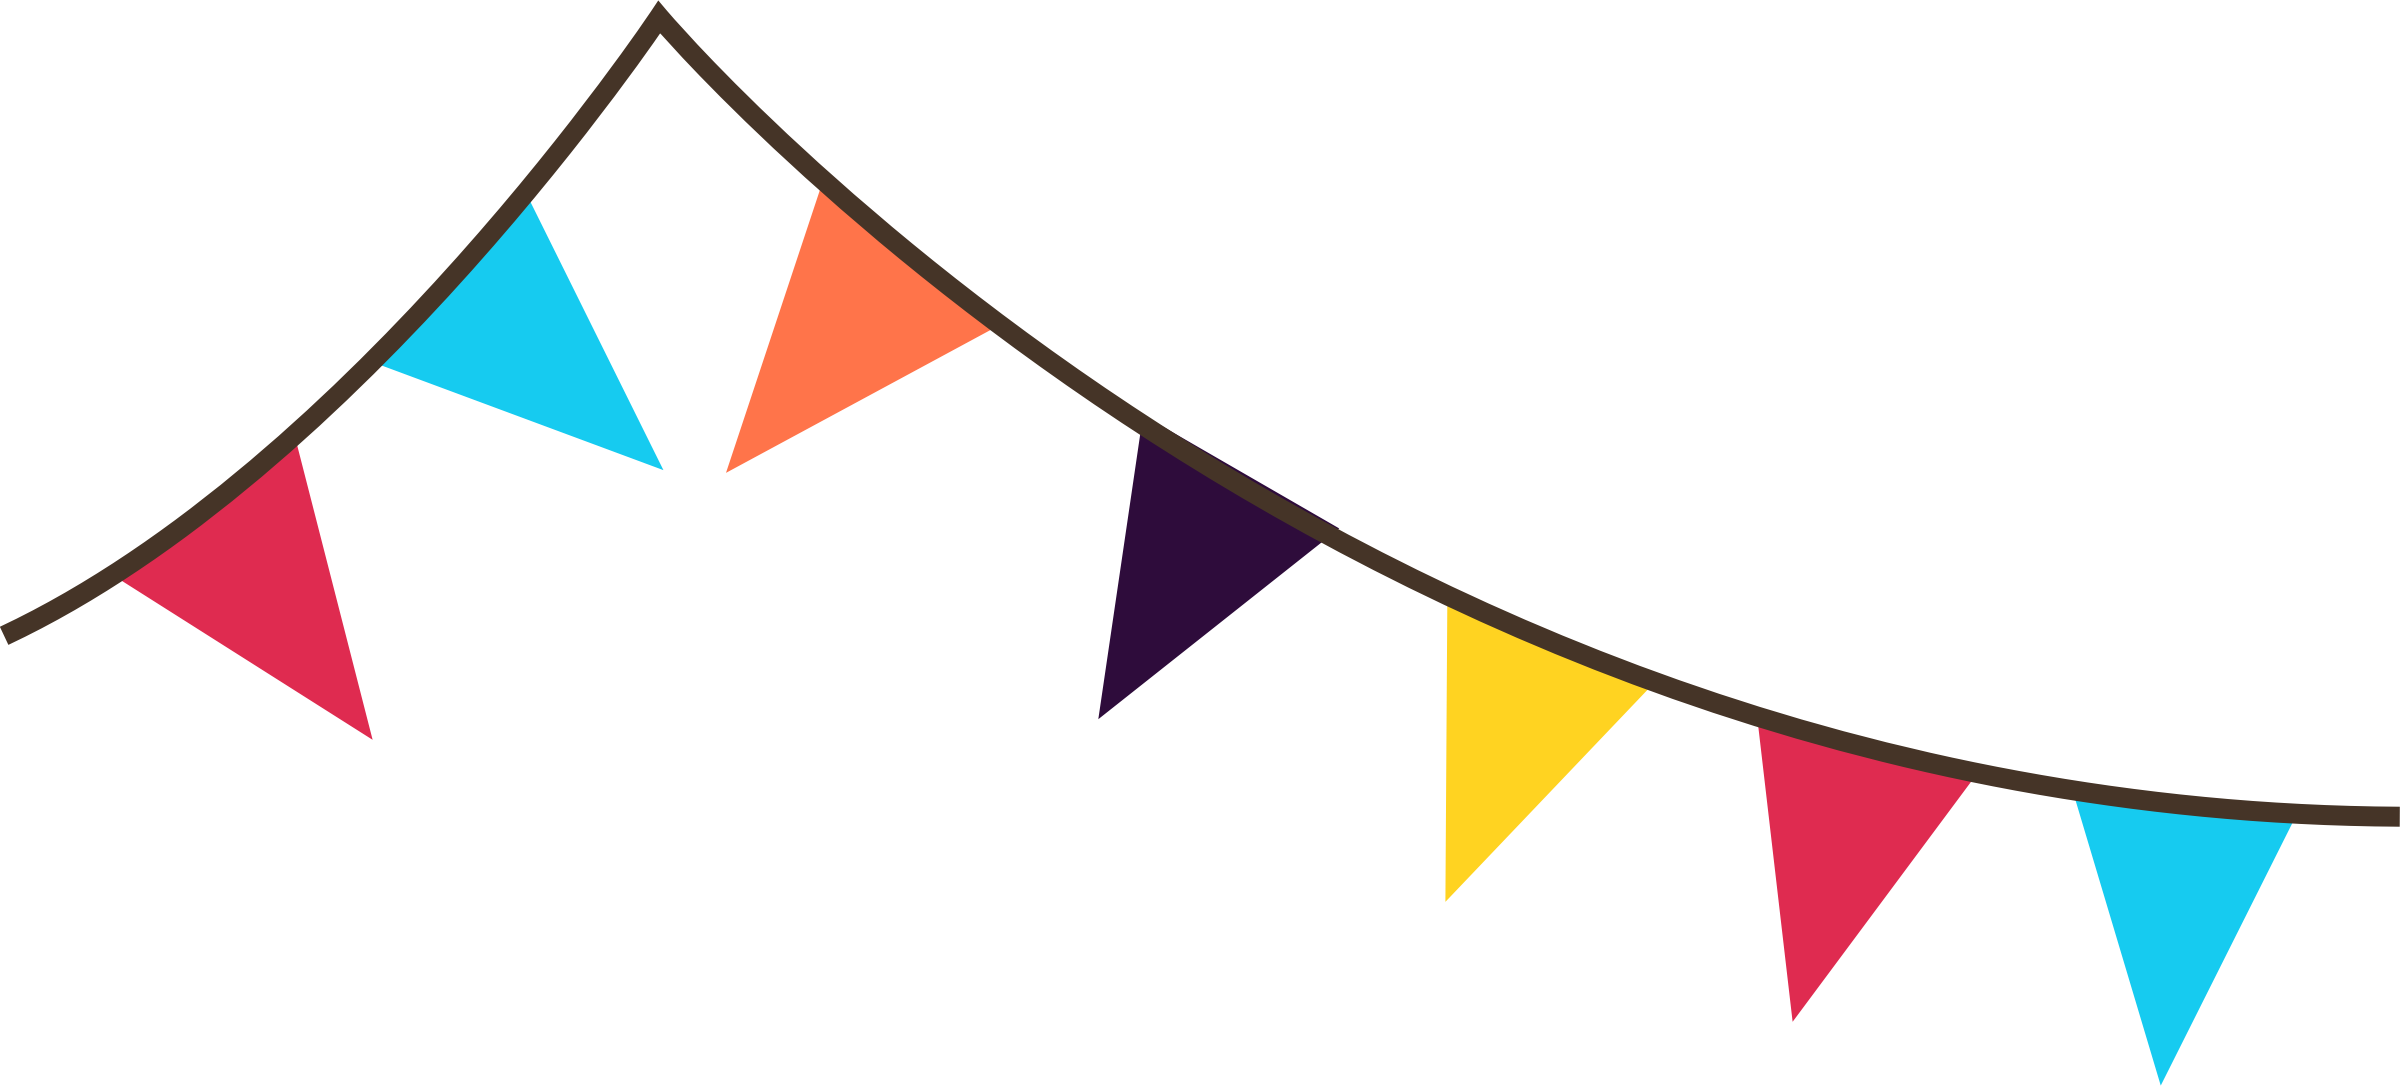 Bunting Banner Clip Art free image.